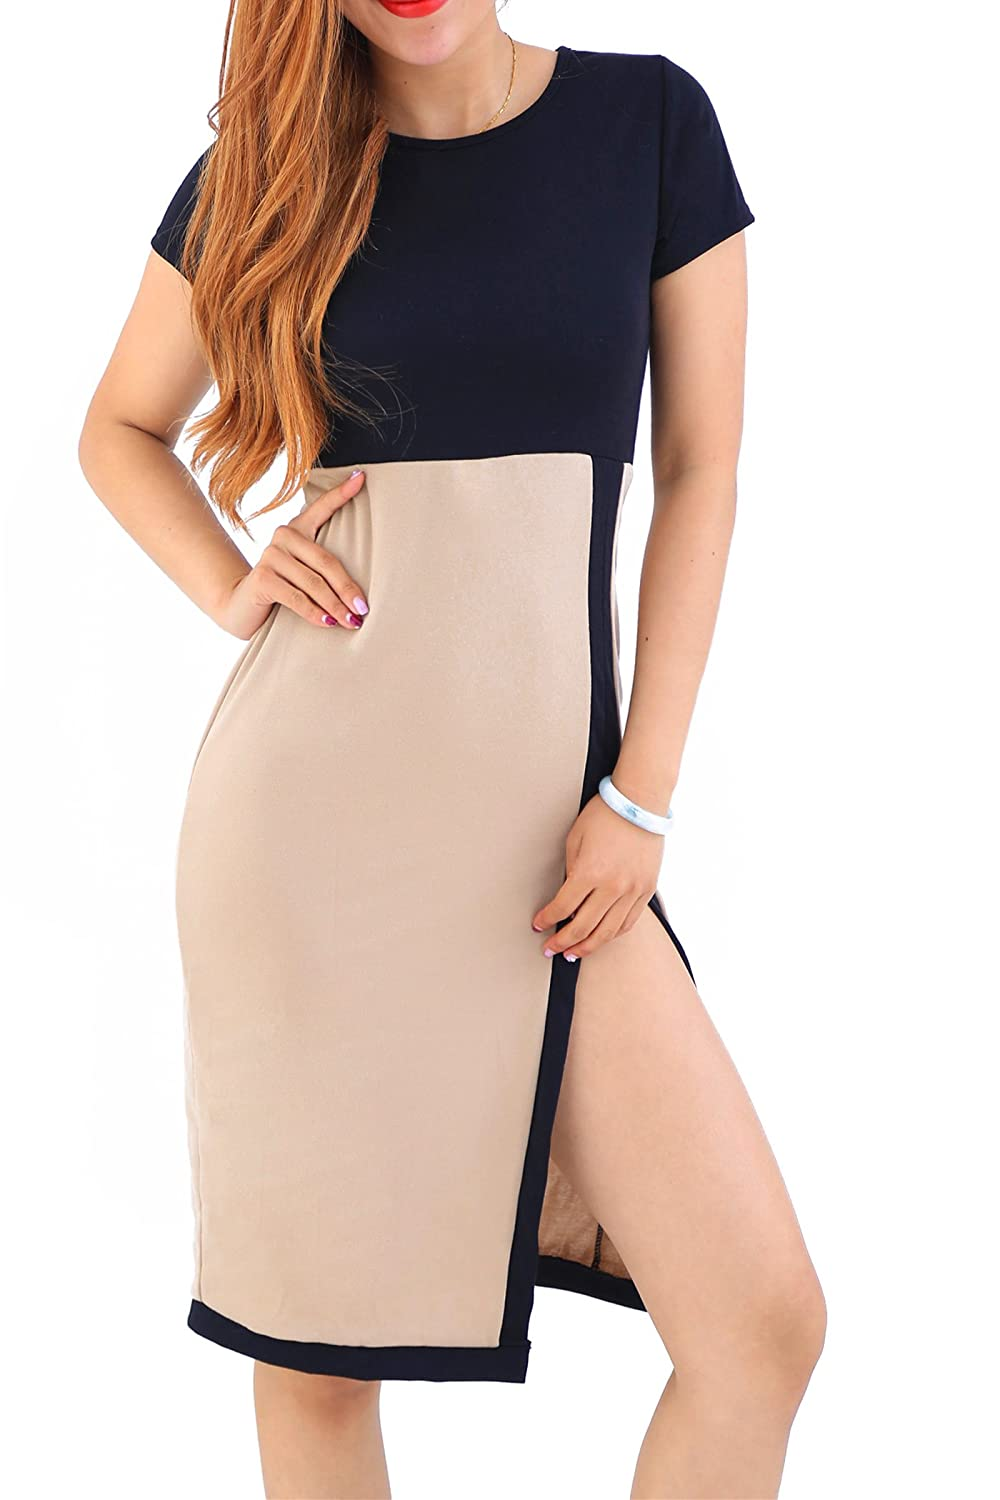 Yming Frauen Short Sleeve Tragen Casual Dress Bleistift Geschäfts Partei Bodycon to Work